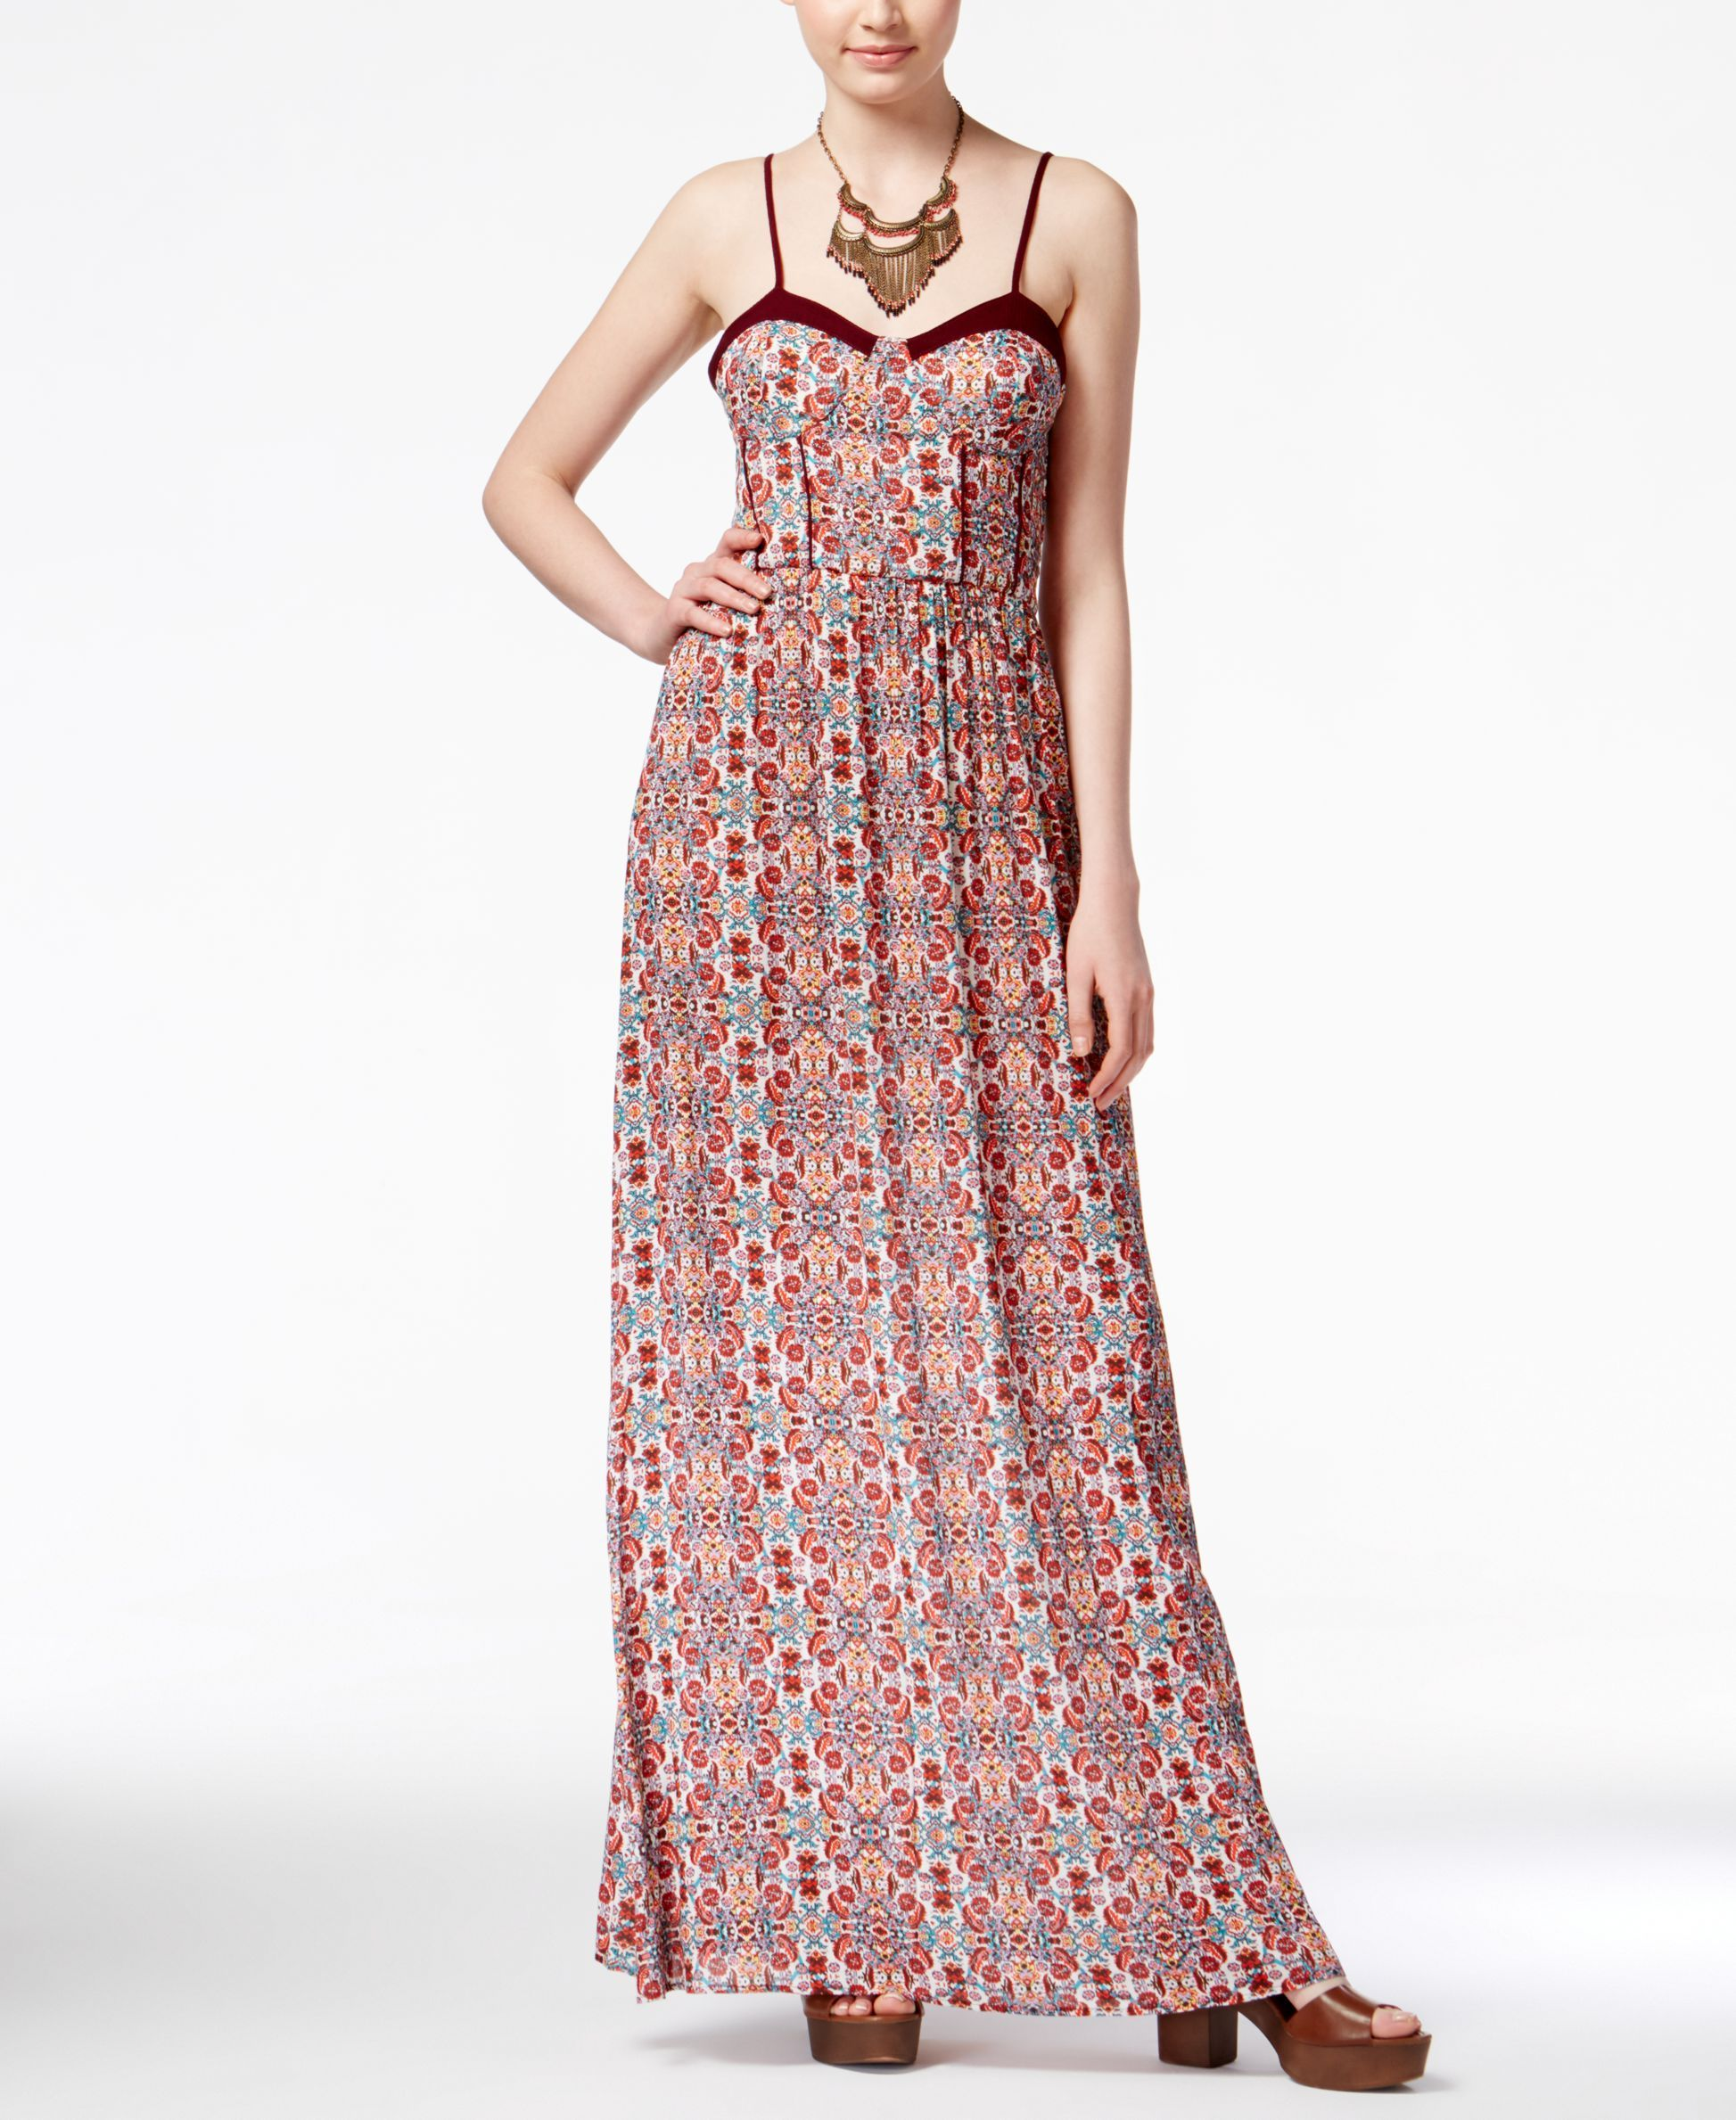 032c8d740894 American Rag Printed Maxi Dress, Only at Macy's | The BBQ Realm ...